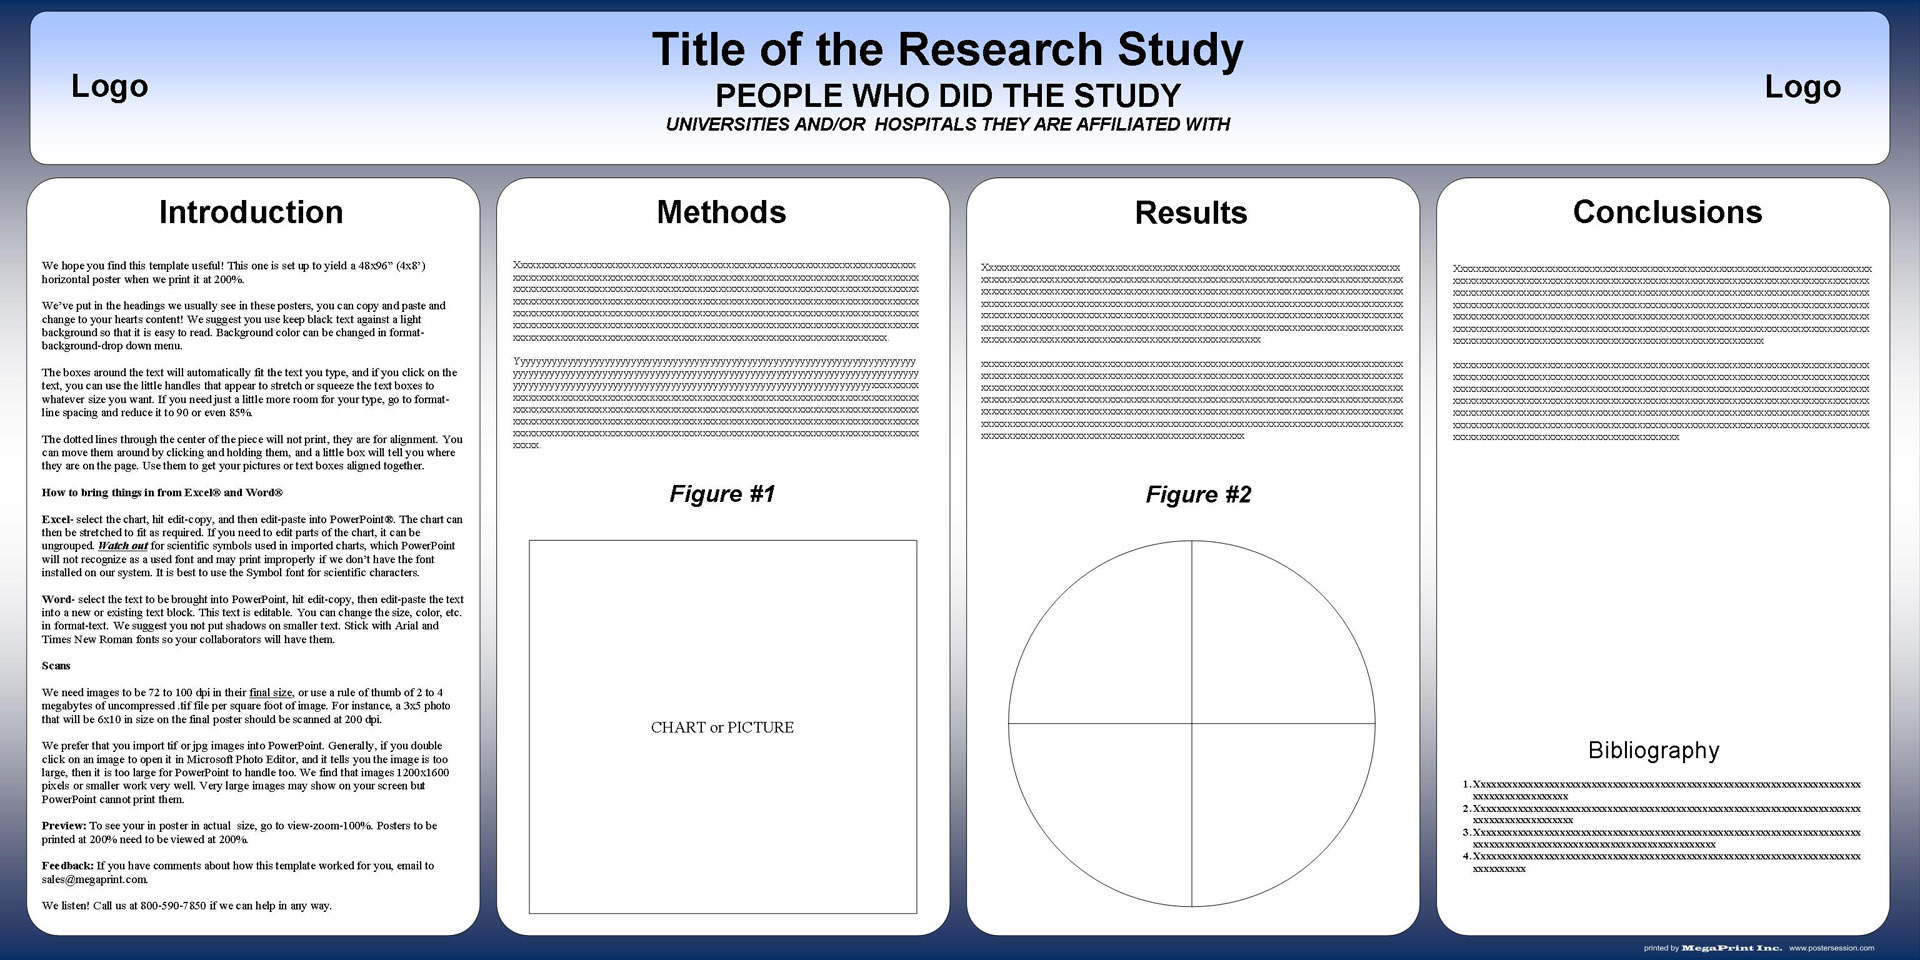 48x96 academic poster template